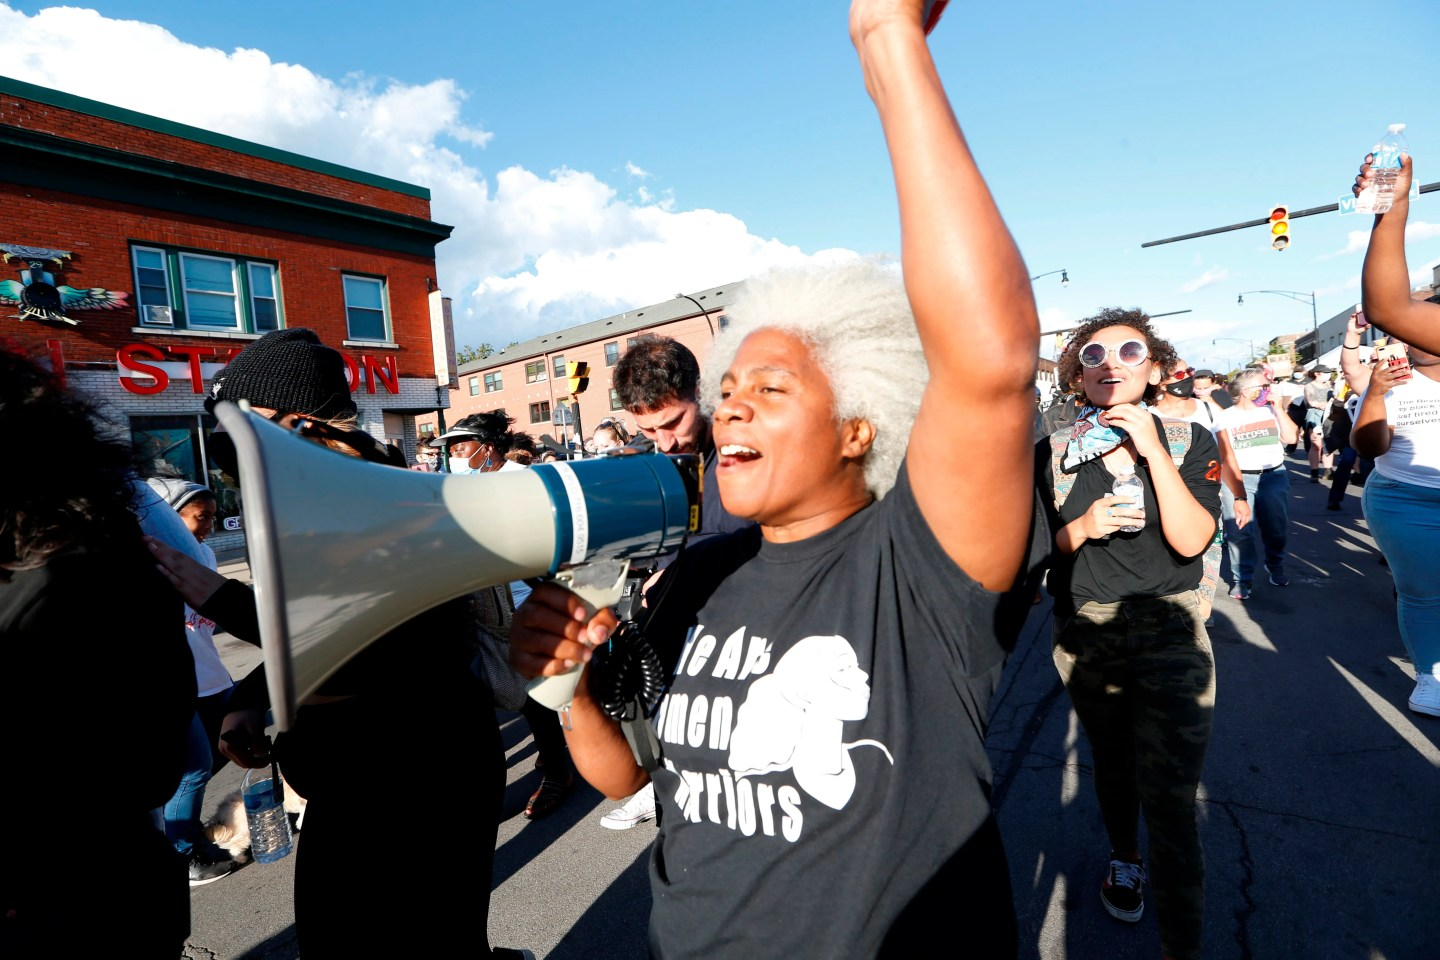 Cariol Horne marches during a protest organized by We Pump 716 and the Liberation Collective, Friday, Sept. 4, 2020, in Buffalo.